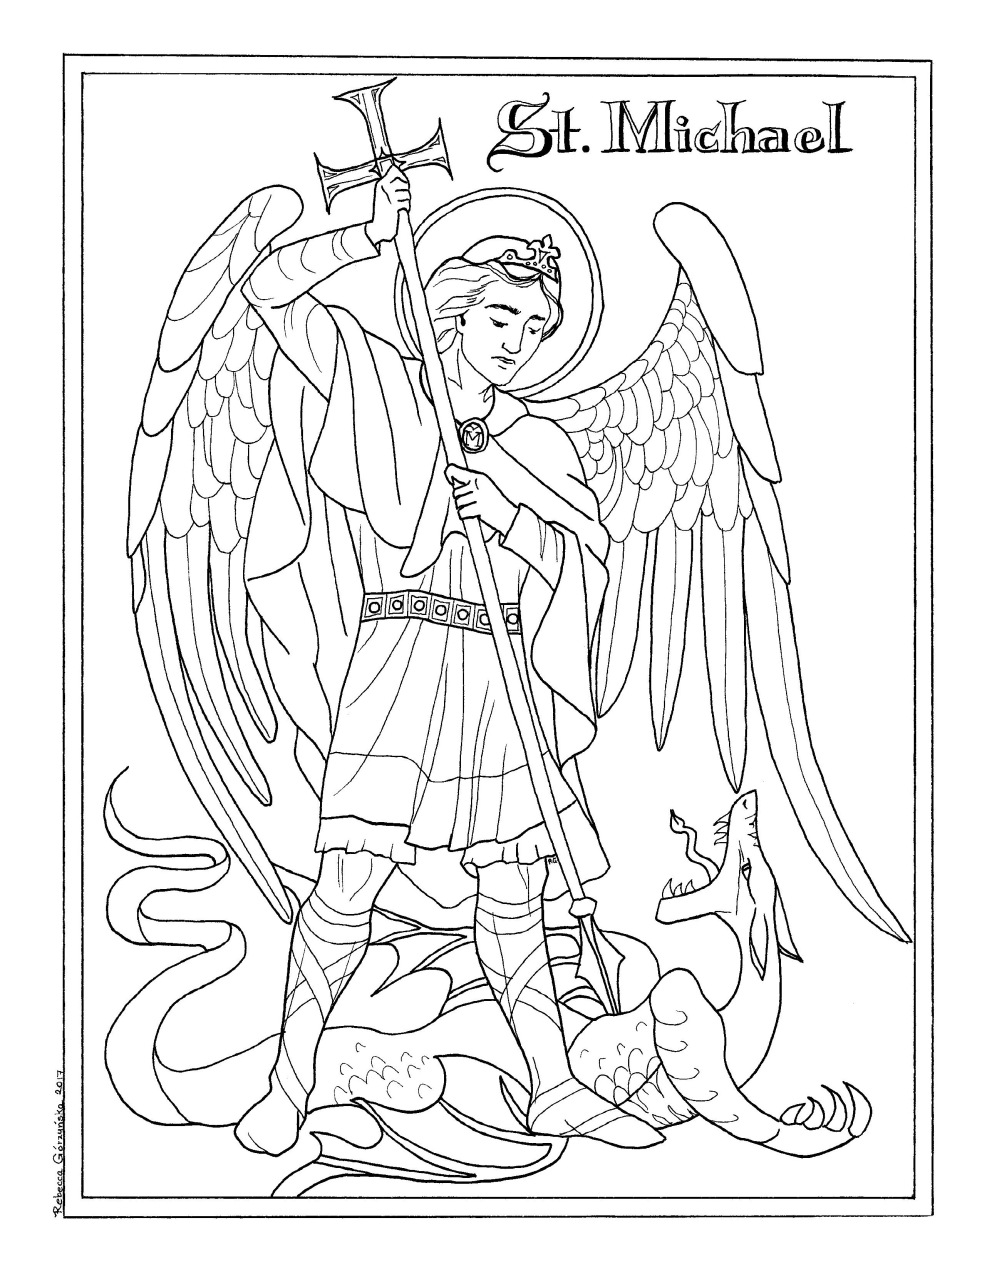 michaelmas feast of st michael the archangel september 29th catholic coloring page